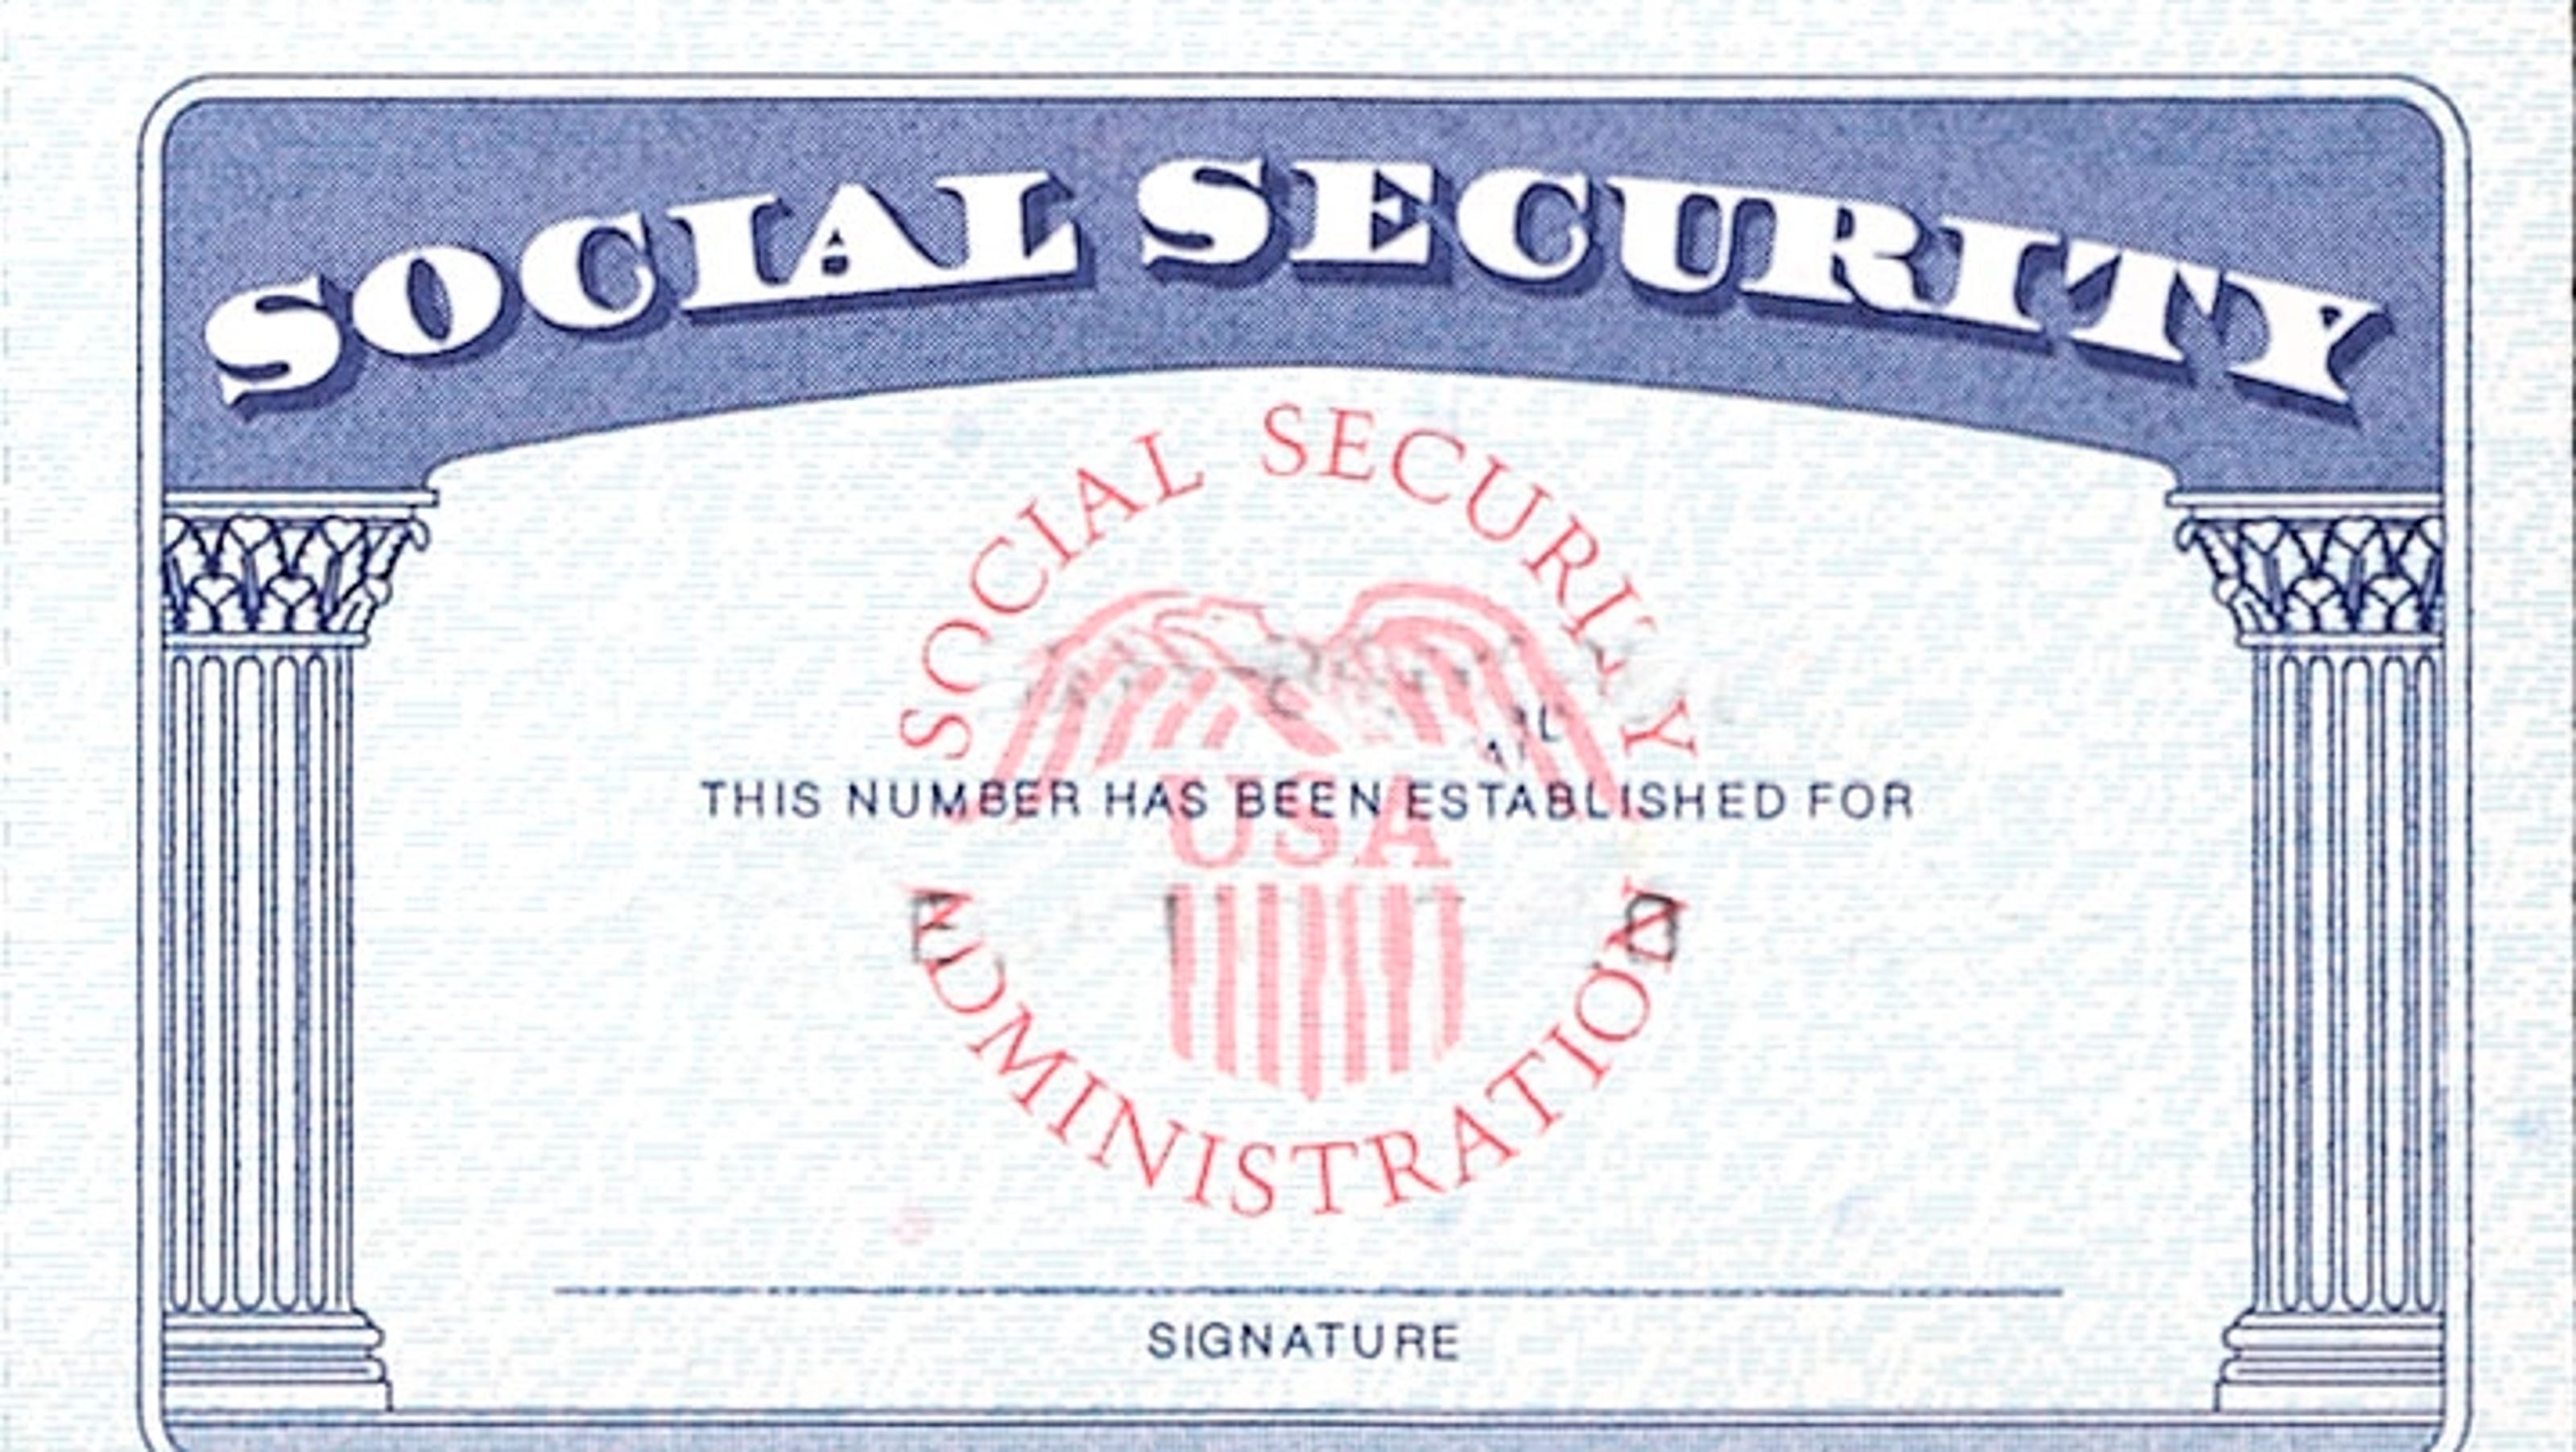 social security Understanding your social security benefit is an important part of retirement planning use this guide to determine your benefits and understand other issues related.